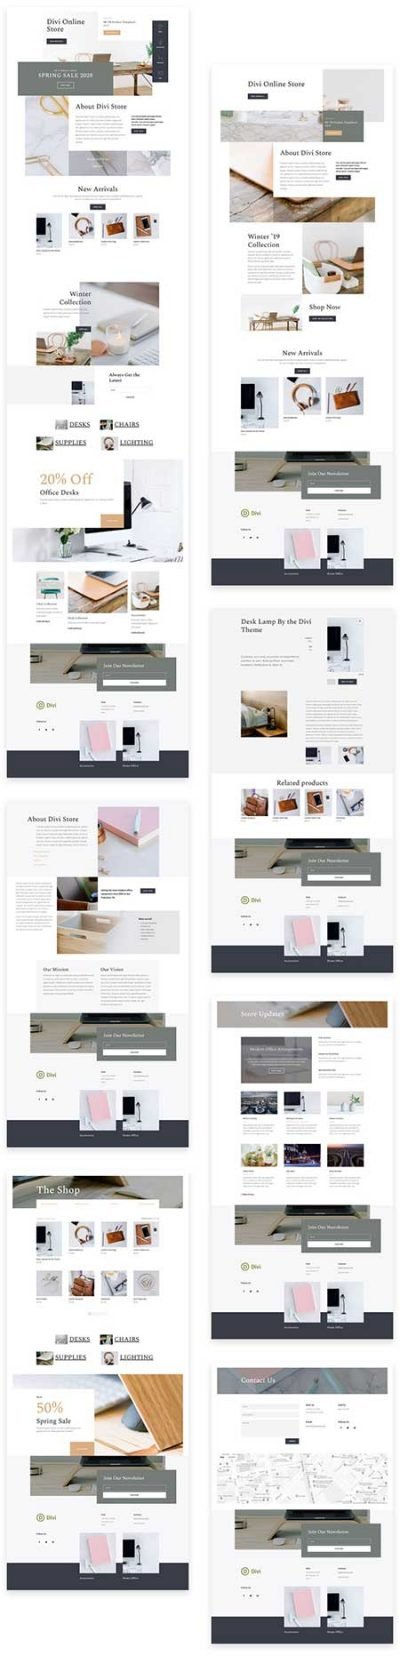 Divi Online Store layout pack